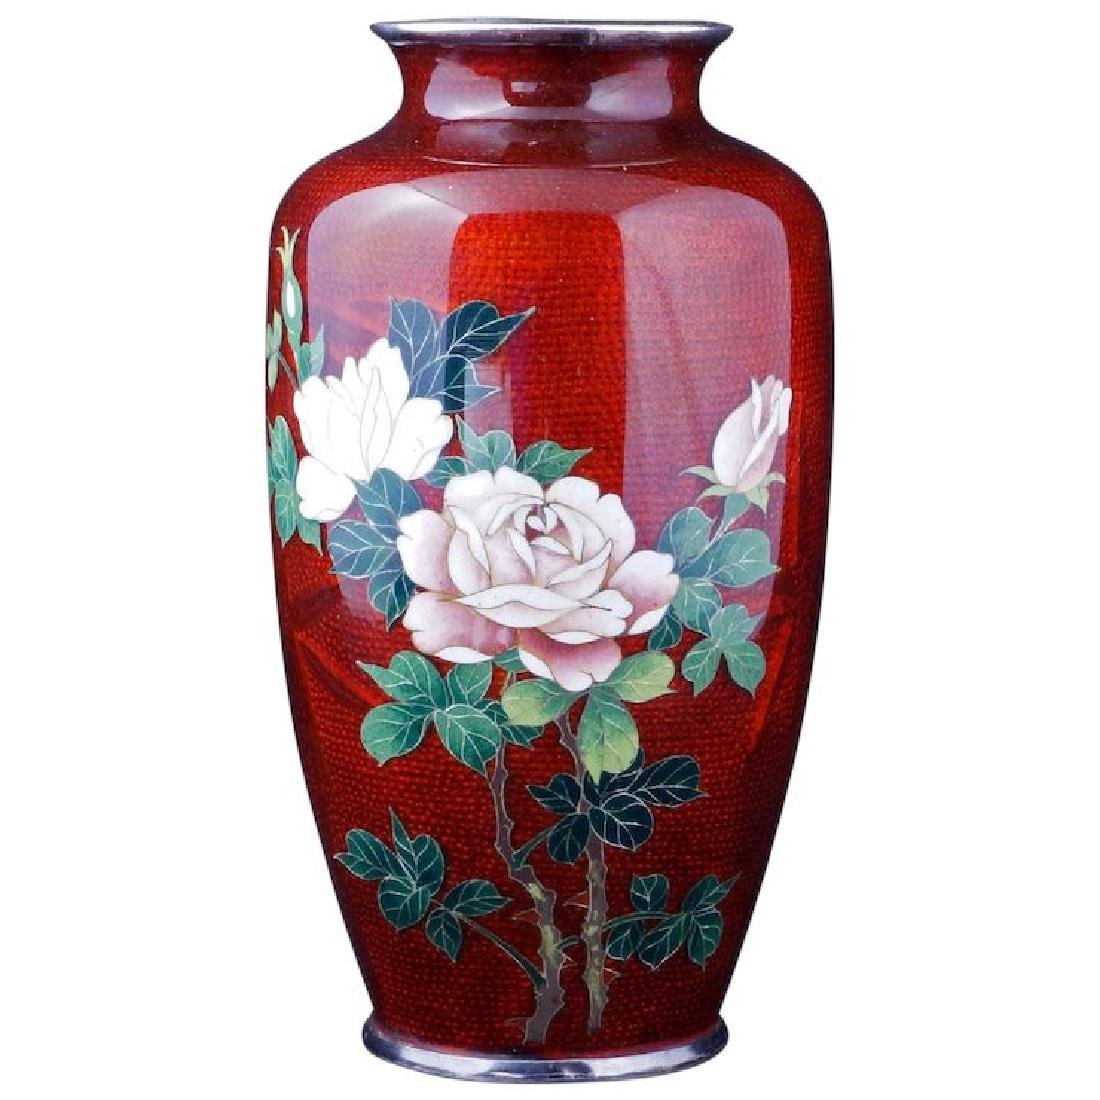 Japanese cloisonné Ginbari vase in red with a rose